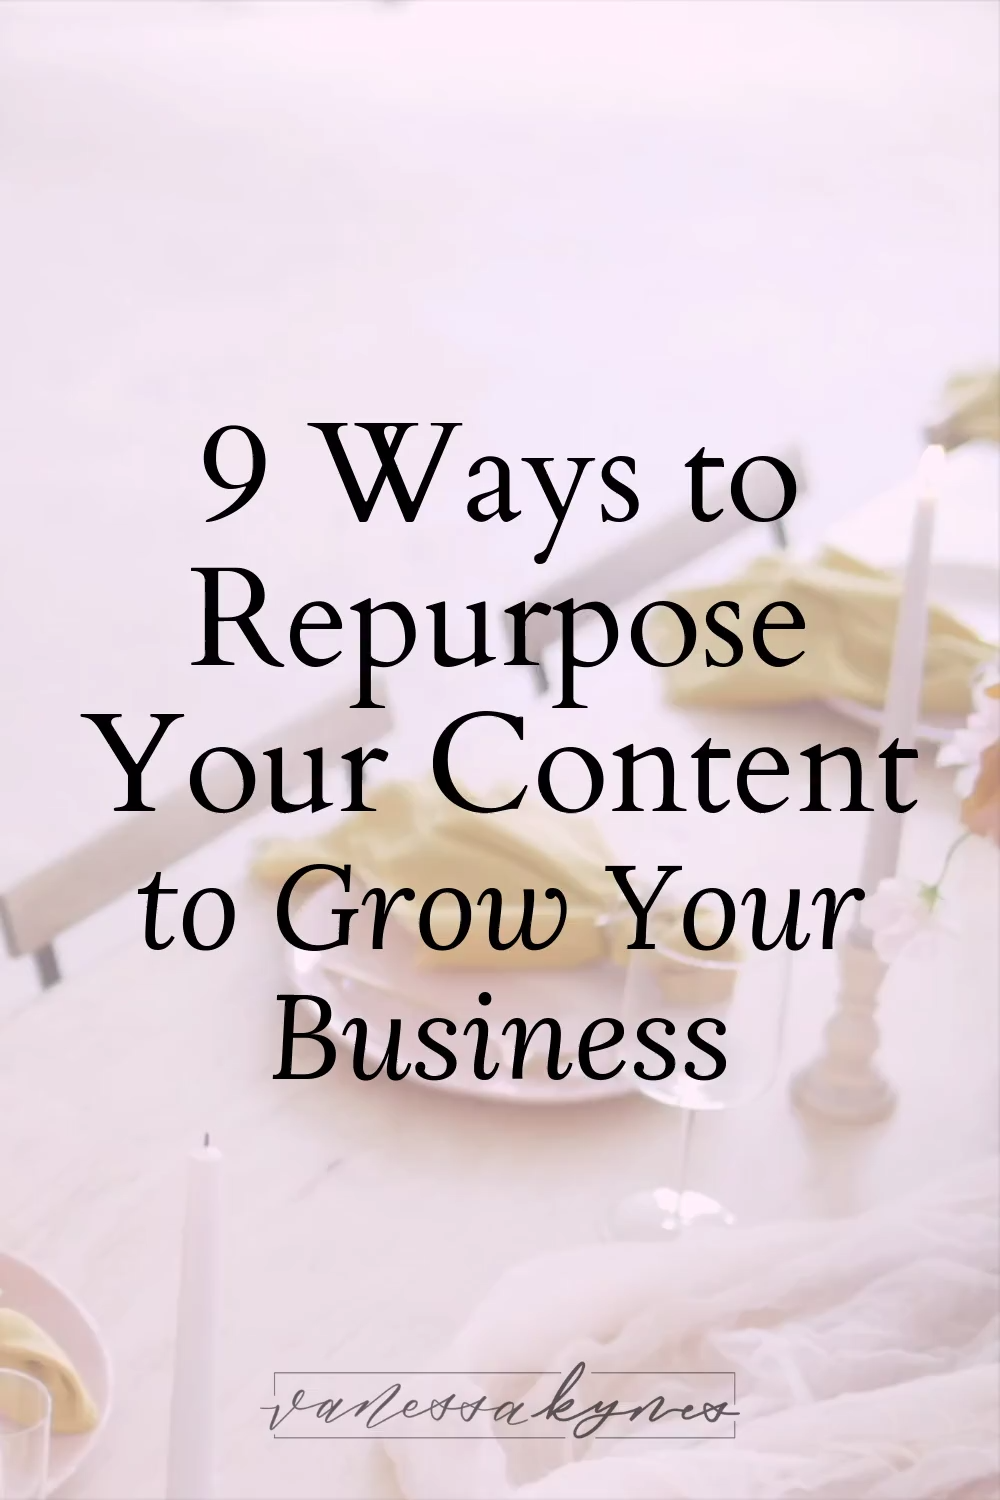 9 Ways to Repurpose your Content | Join me as we discuss 9 ways to repurpose your content so that you never run out of ways to market your business! #contentmarketing #bloggingtips #businesstips